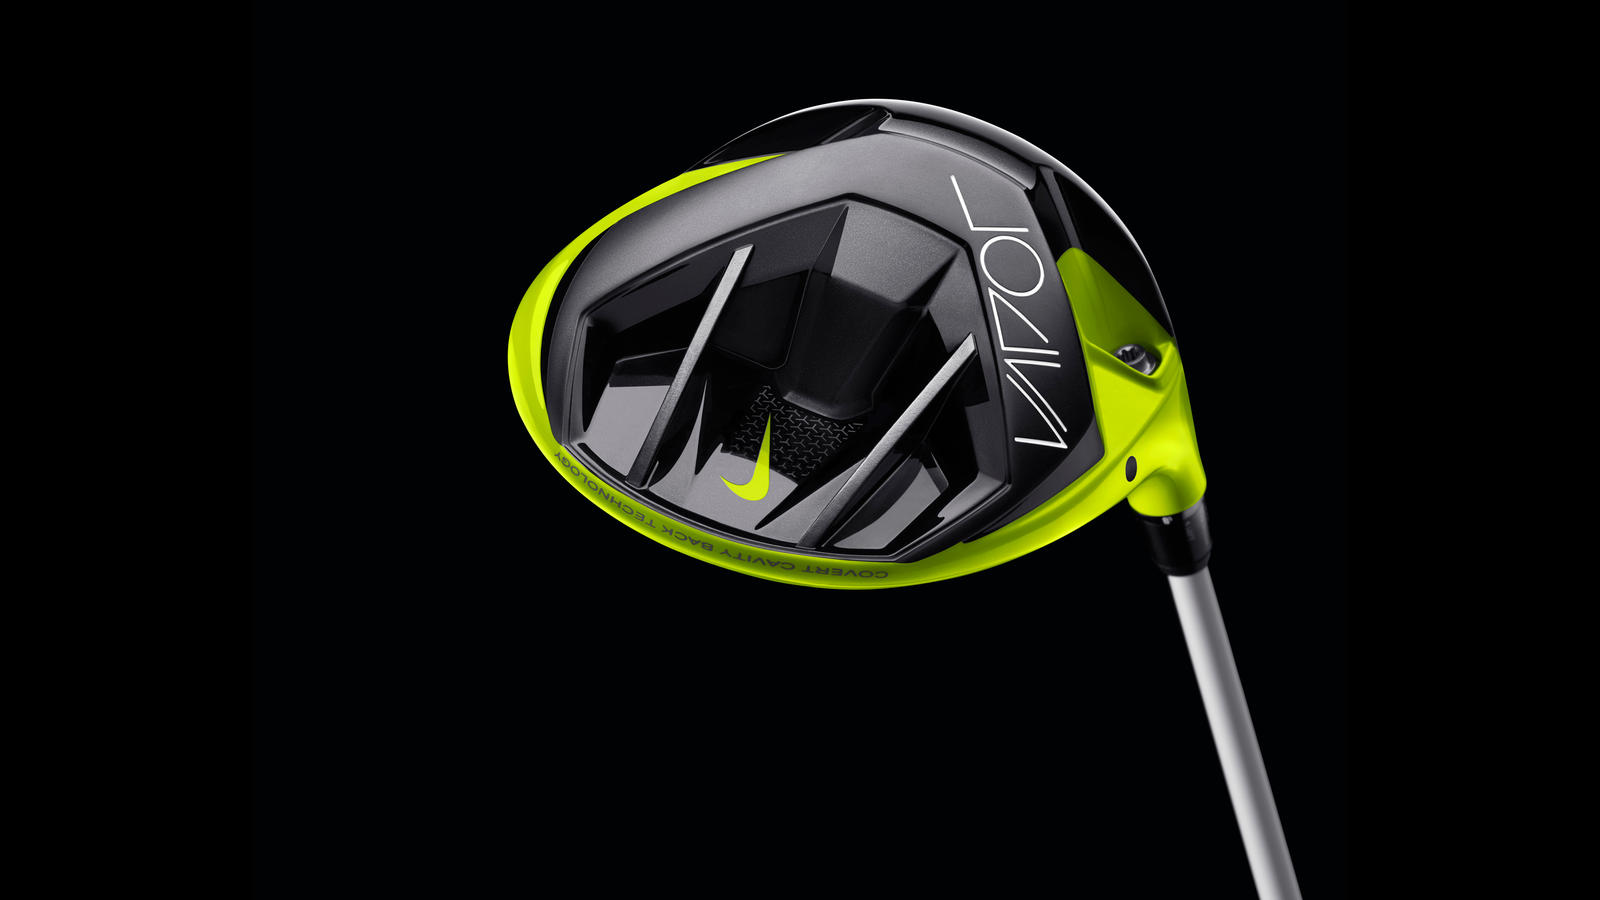 Michelle Wie Adds More Volt To Her Nike Golf Equipment